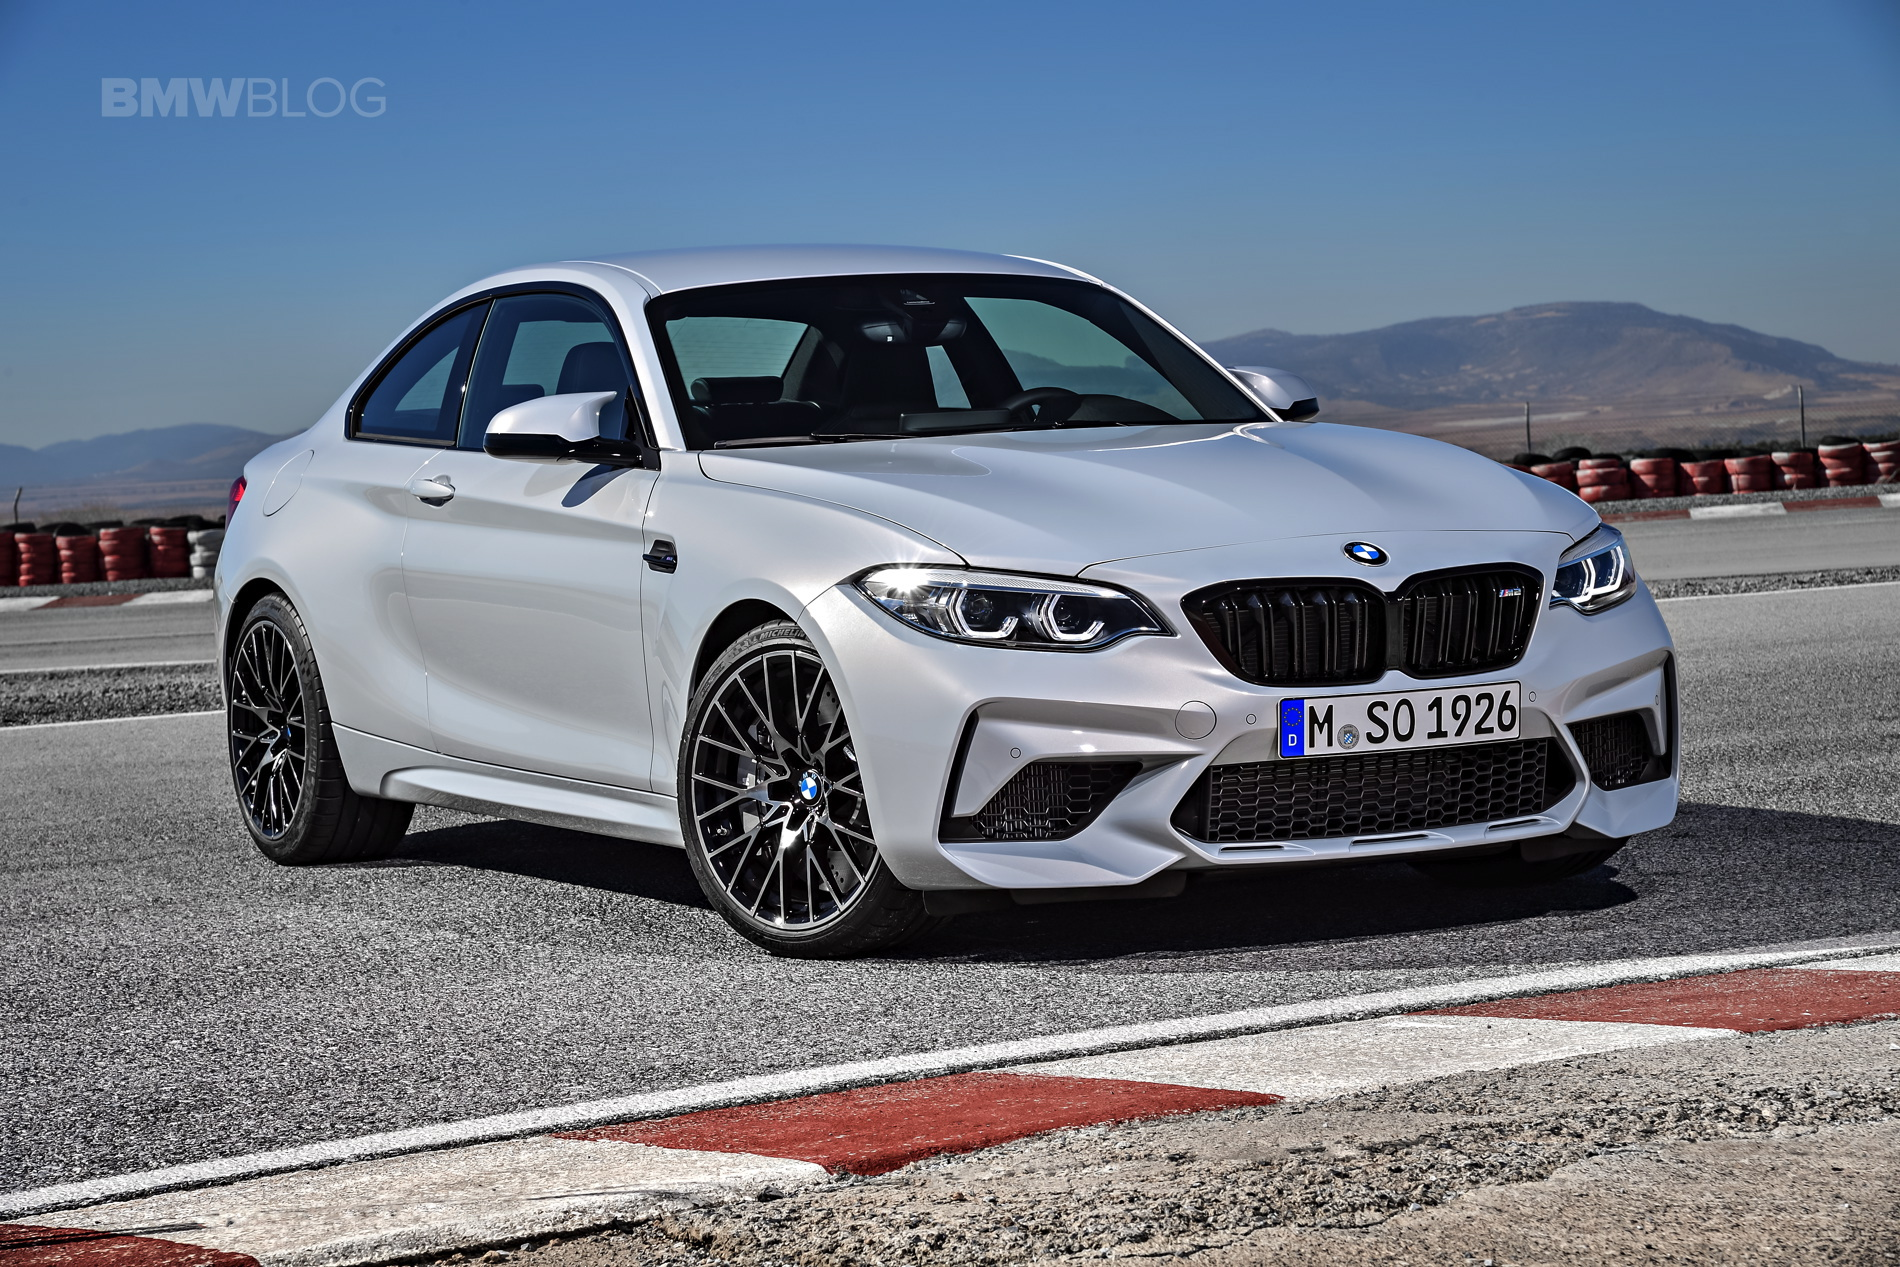 Full Pricing Info for BMW M2 Competition is finally here